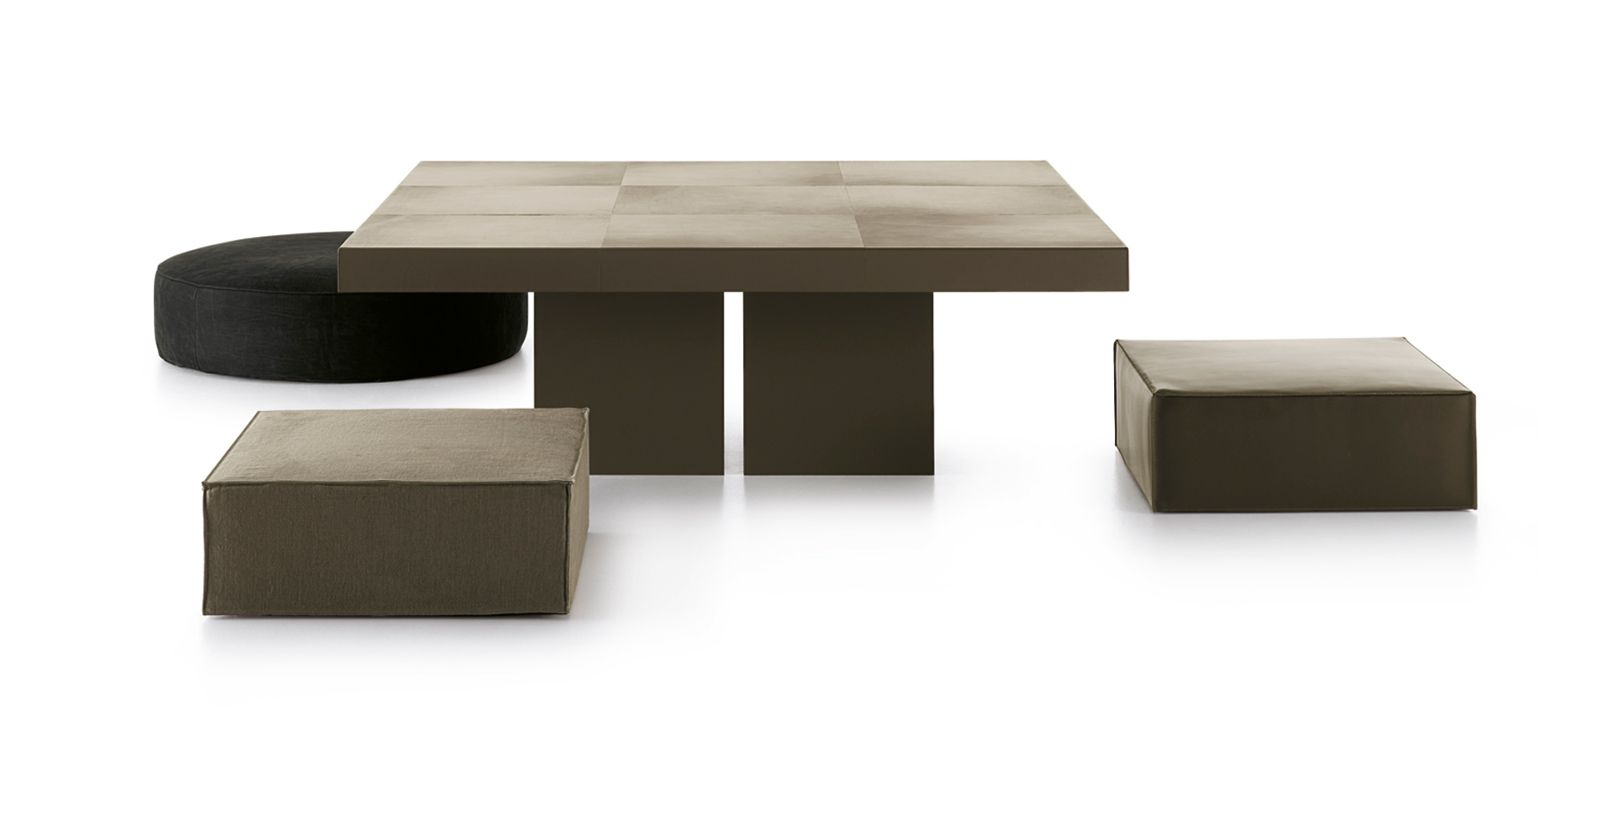 Explore Small Side Tables, Dining Tables, And More!